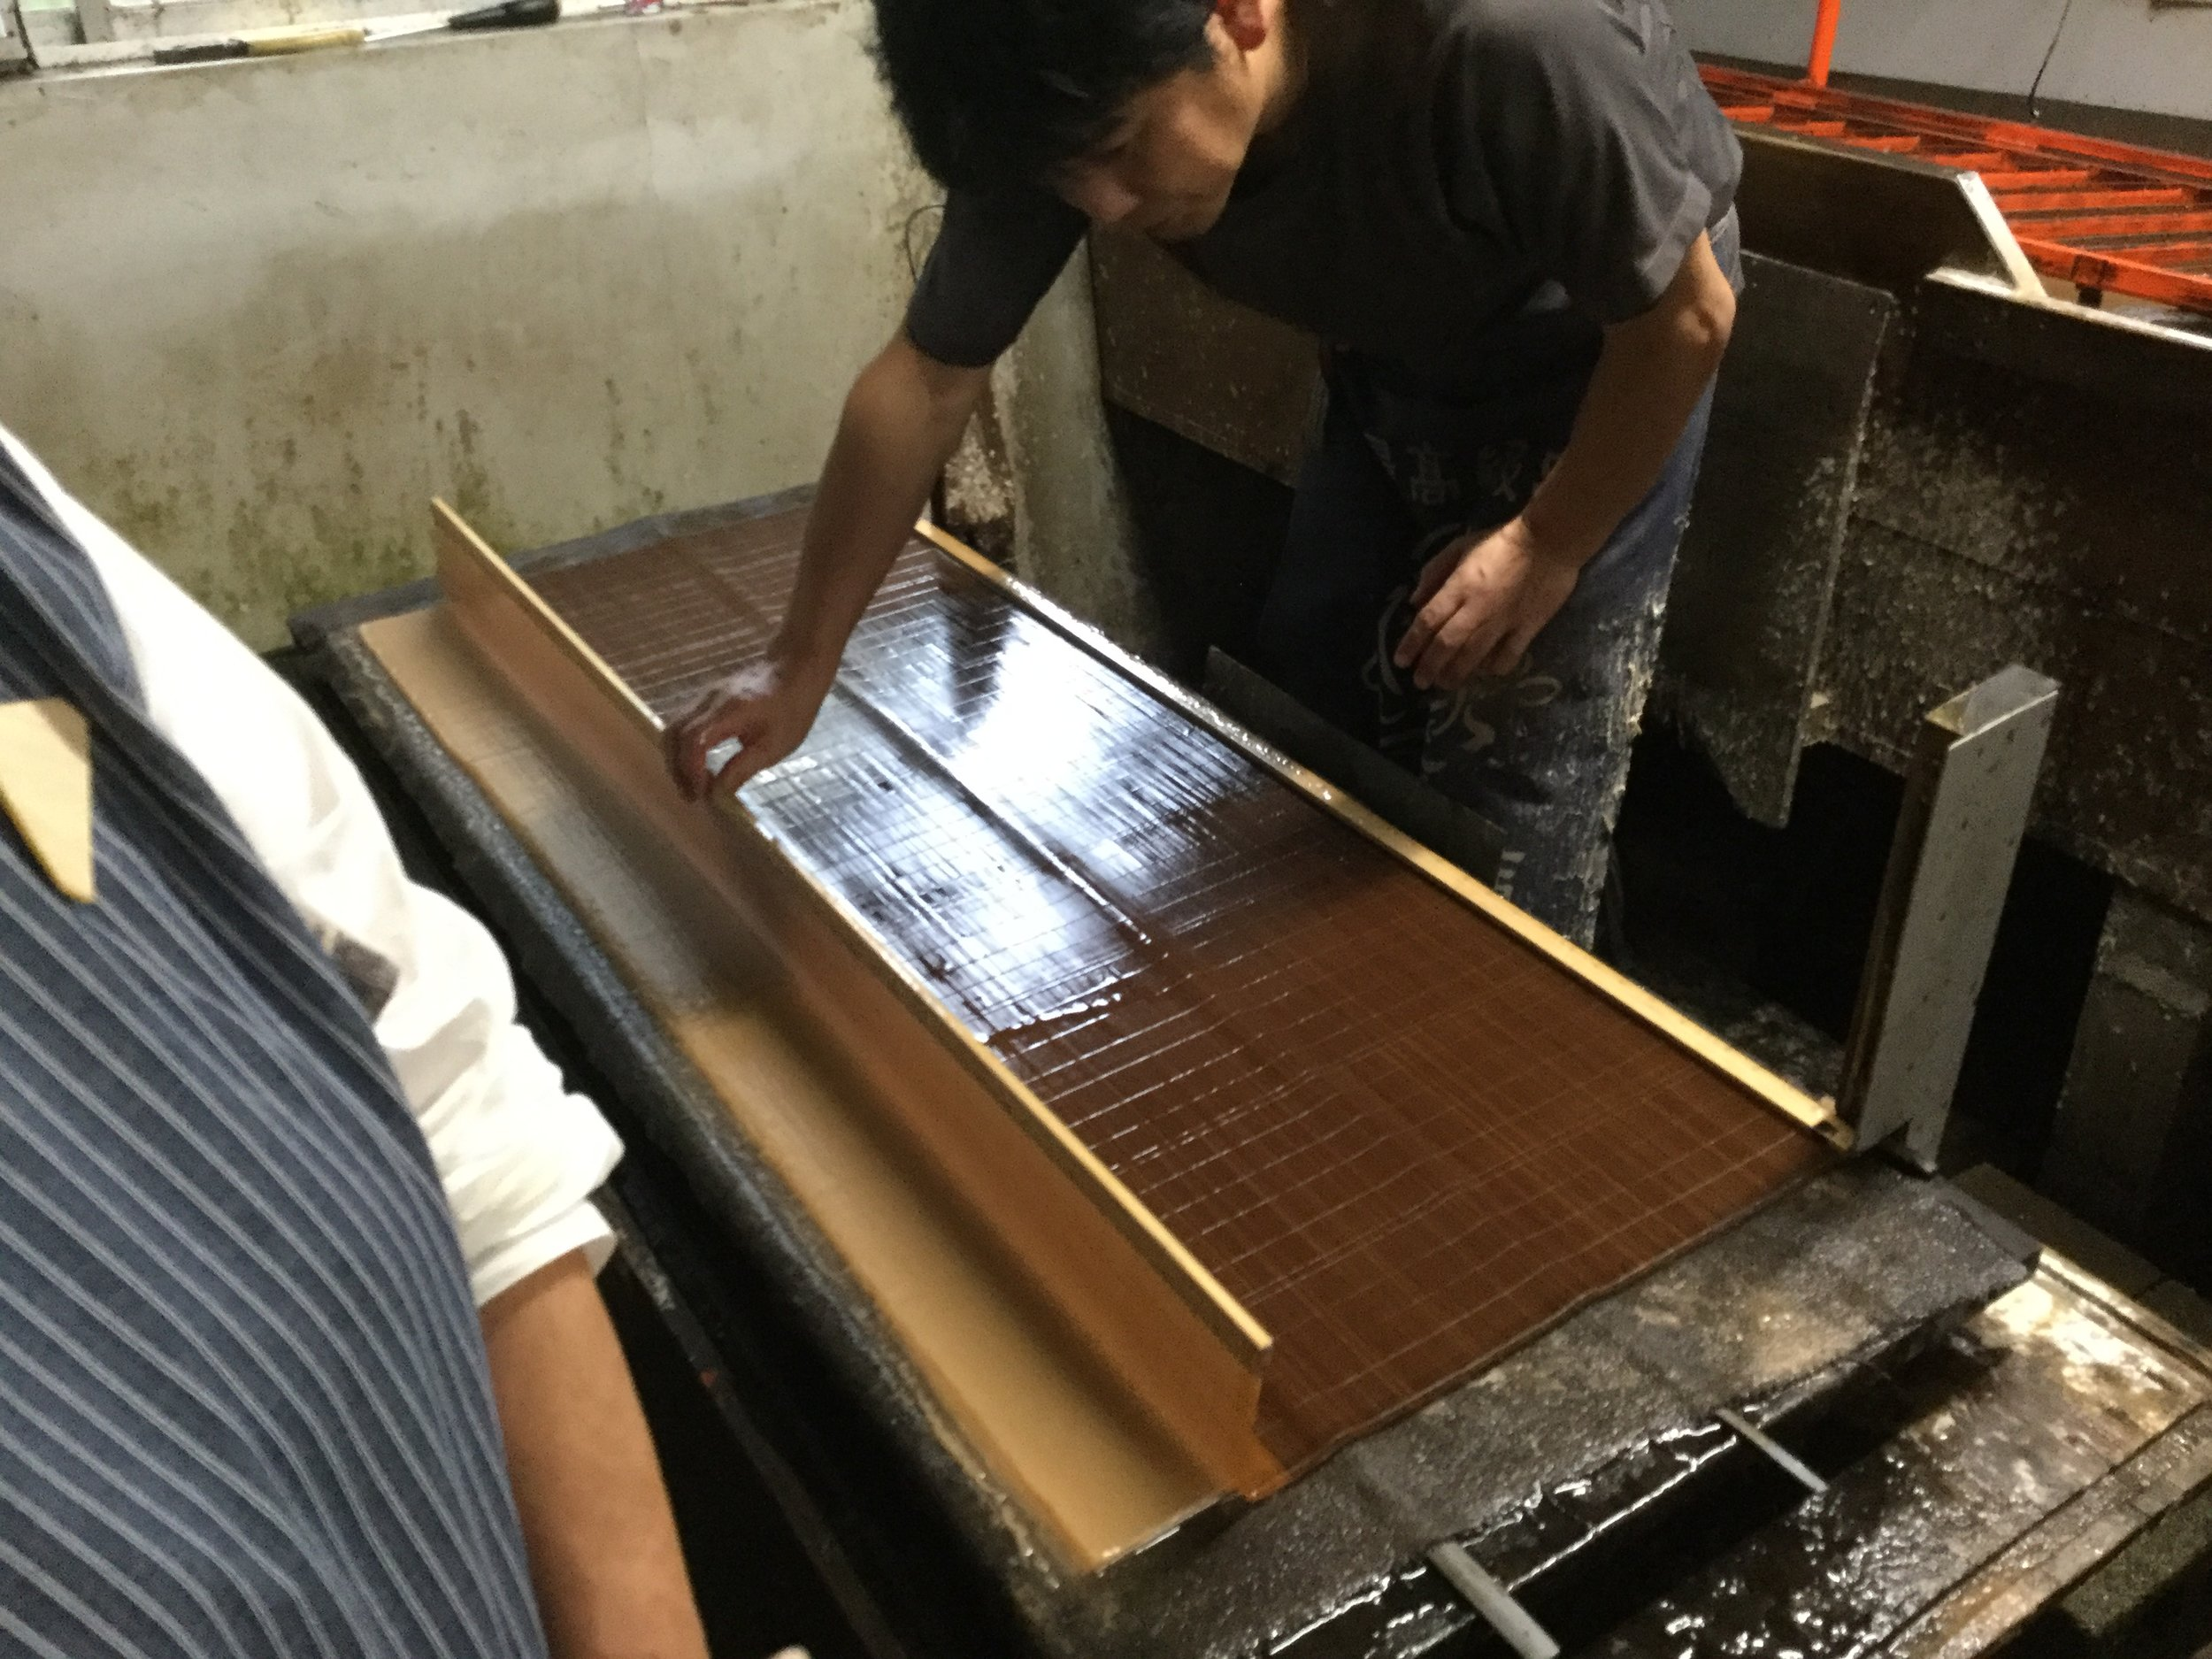 Placing another sheet. There are maybe thirty sheets on the pile. When the pile is full, it gets lifted to a board where it is pressed to drain the water and keep the sheets completely flat. The sheet gets cut in half - the final papers are half the size of the bamboo mat.